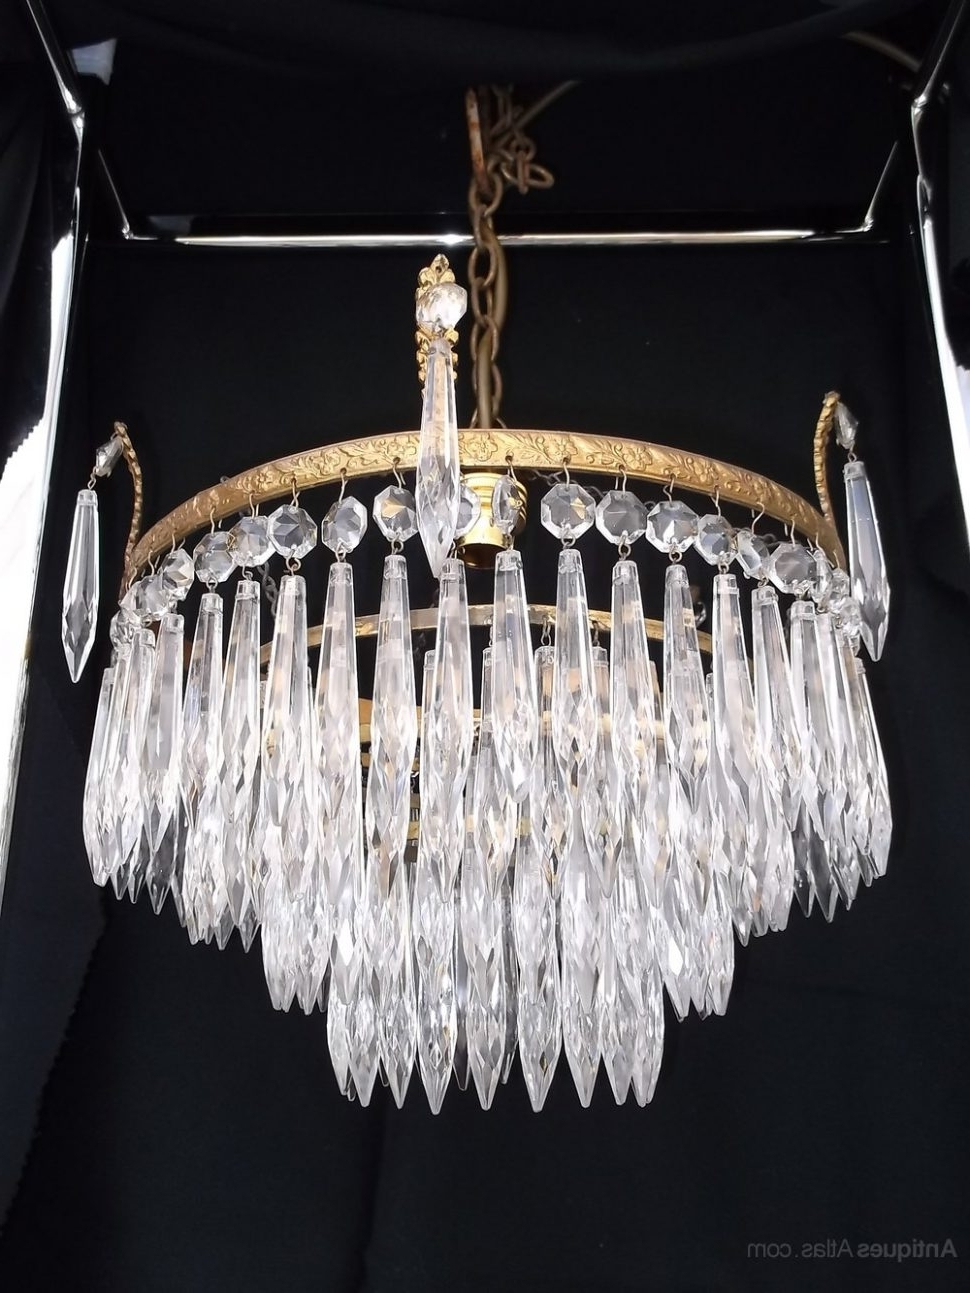 Waterfall Chandeliers Within Best And Newest Chandeliers Design : Awesome Antique Crystal Chandelier Chandeliers (View 14 of 15)